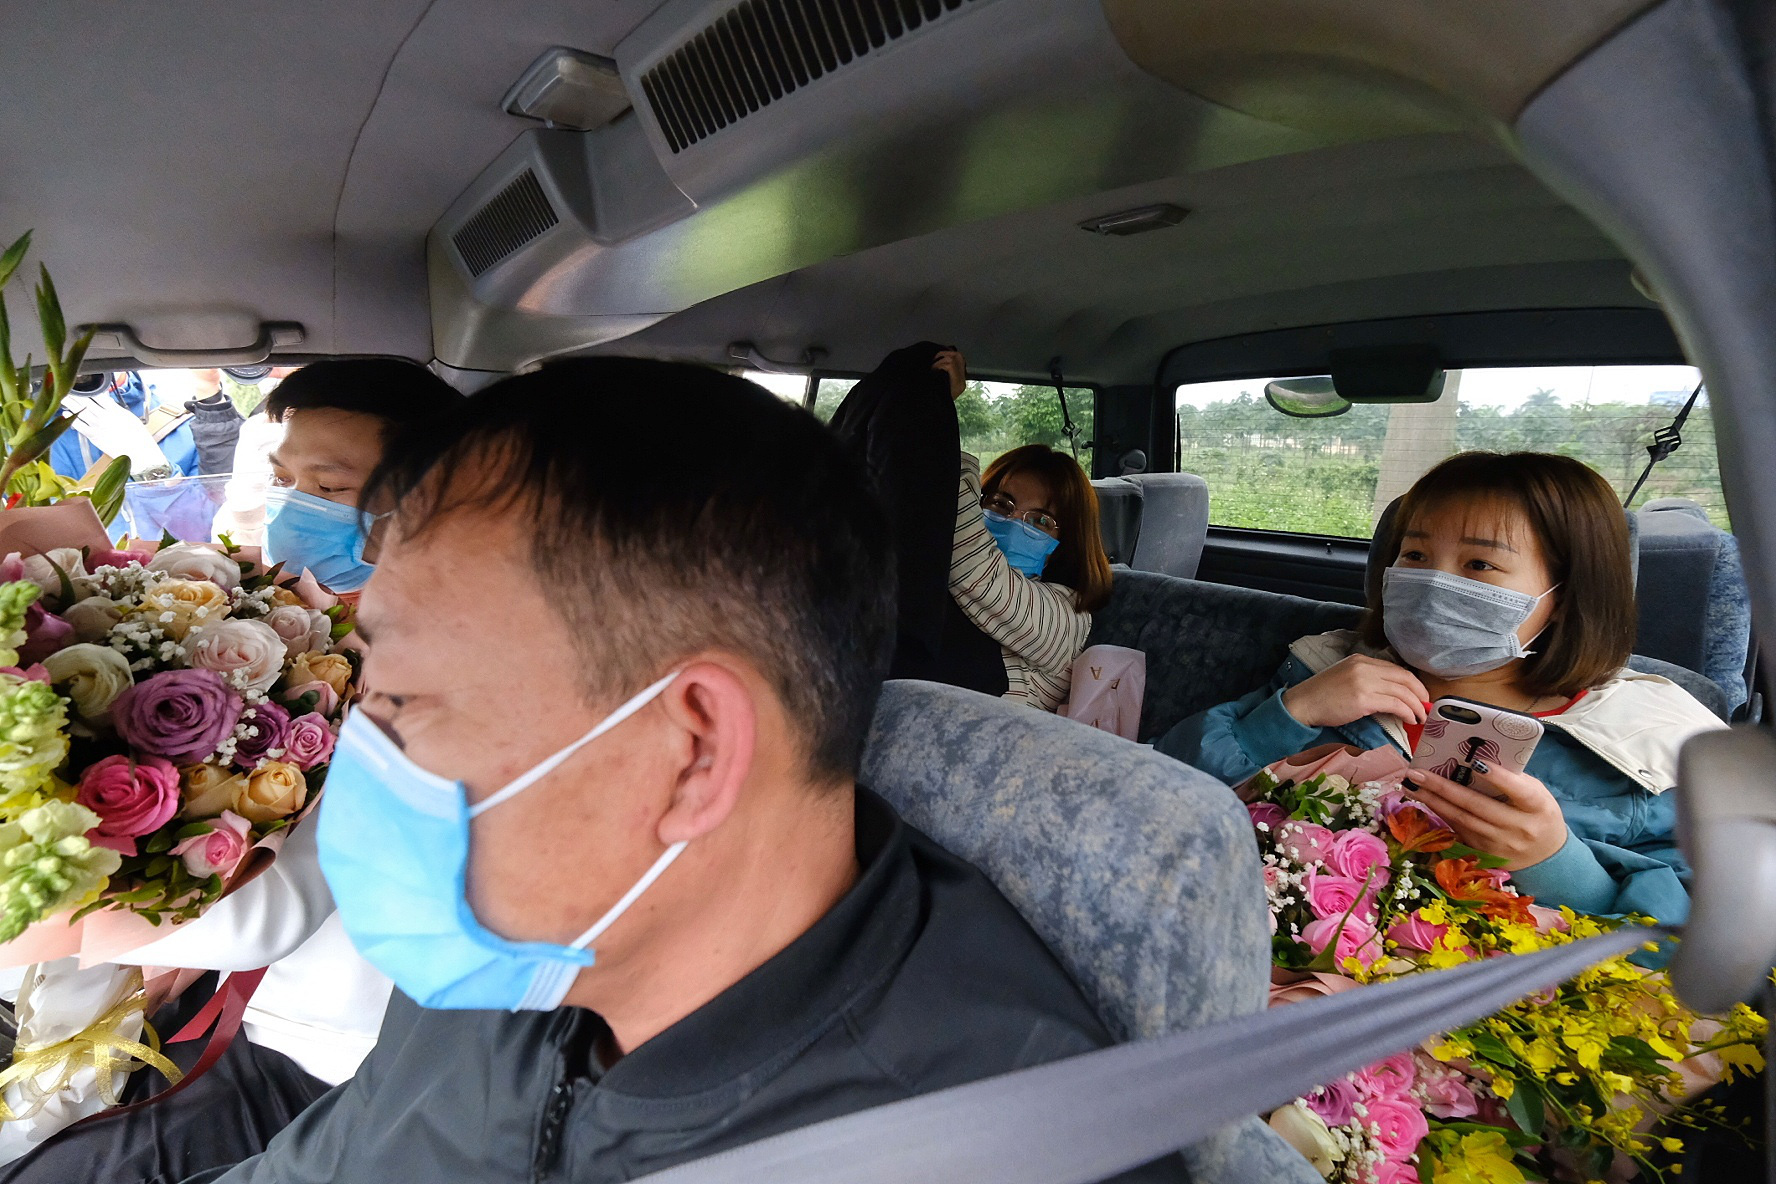 Three recovered novel coronavirus patients are taken to their homes in Vinh Phuc Province, Vietnam, February 10, 2020. Photo: Nam Tran / Tuoi Tre